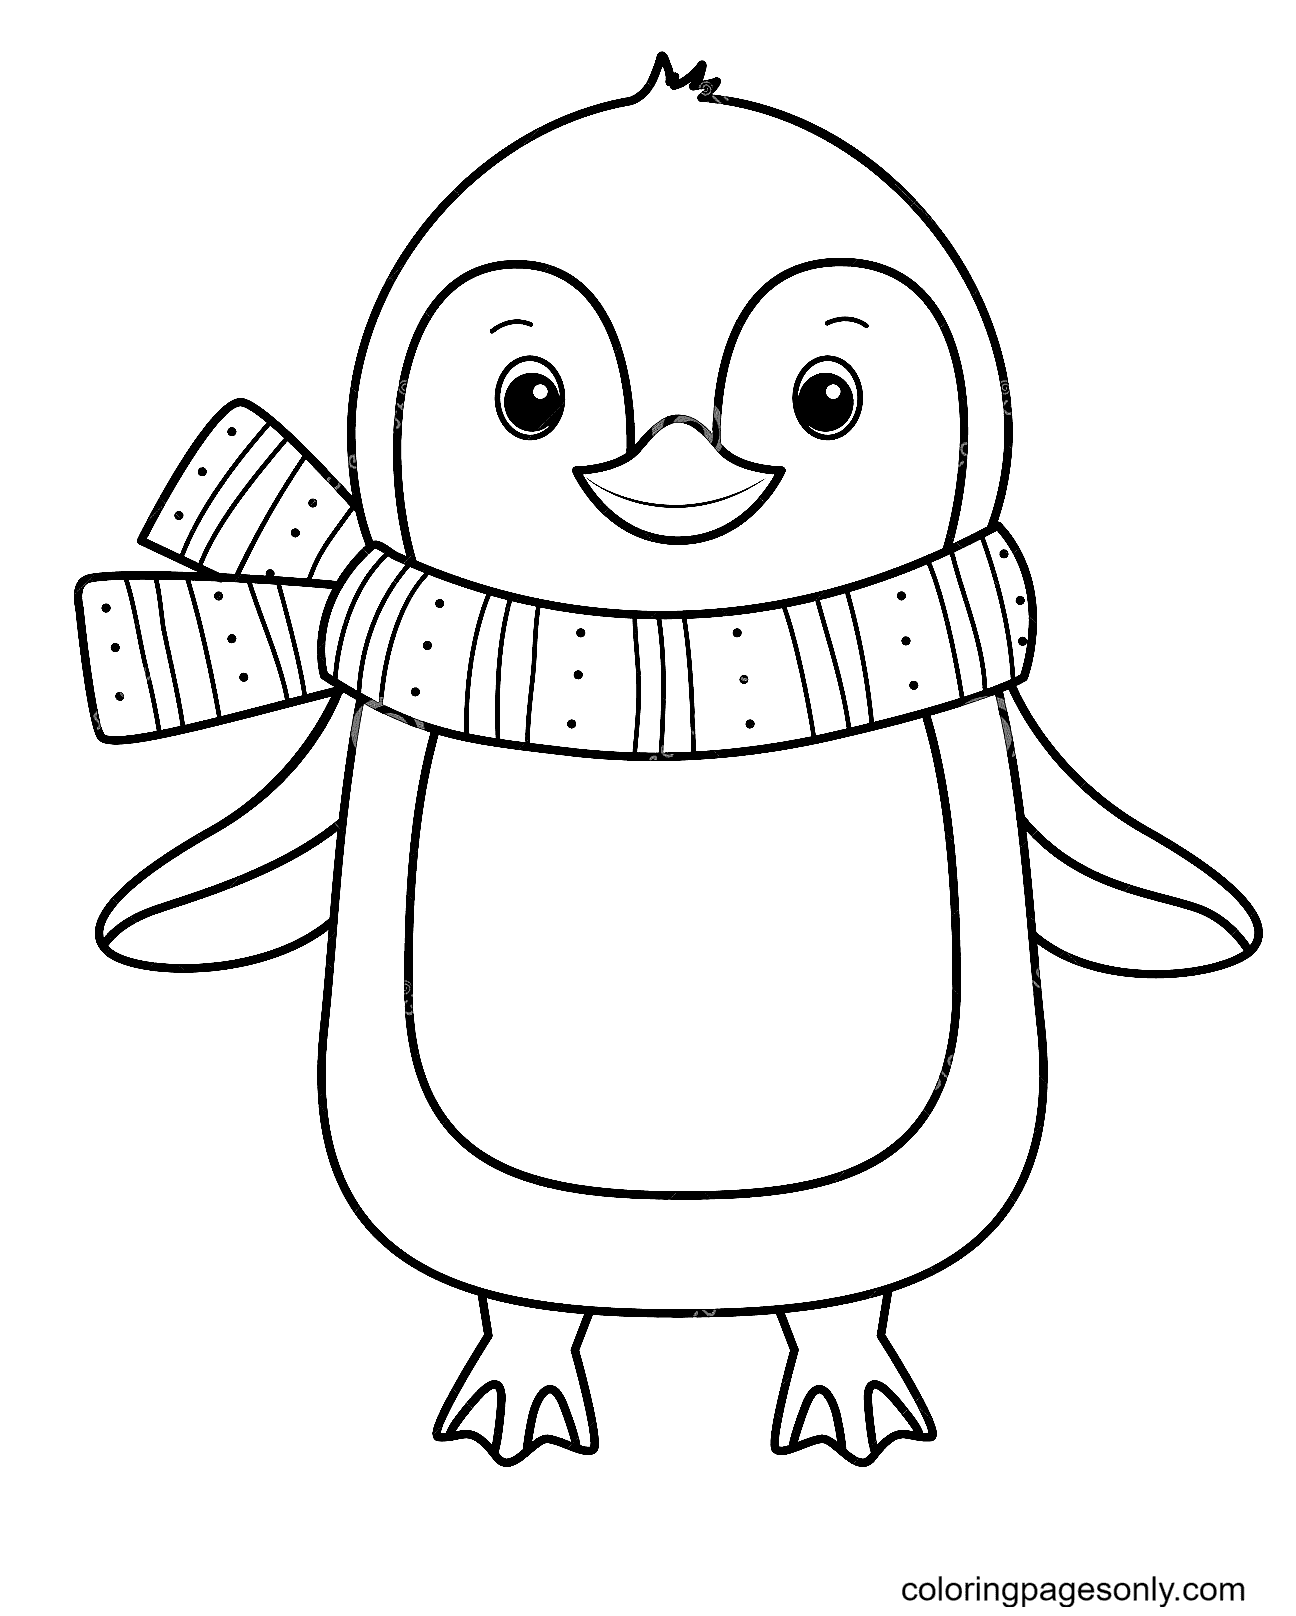 Penguin Wearing a Warm Scarf Coloring Page